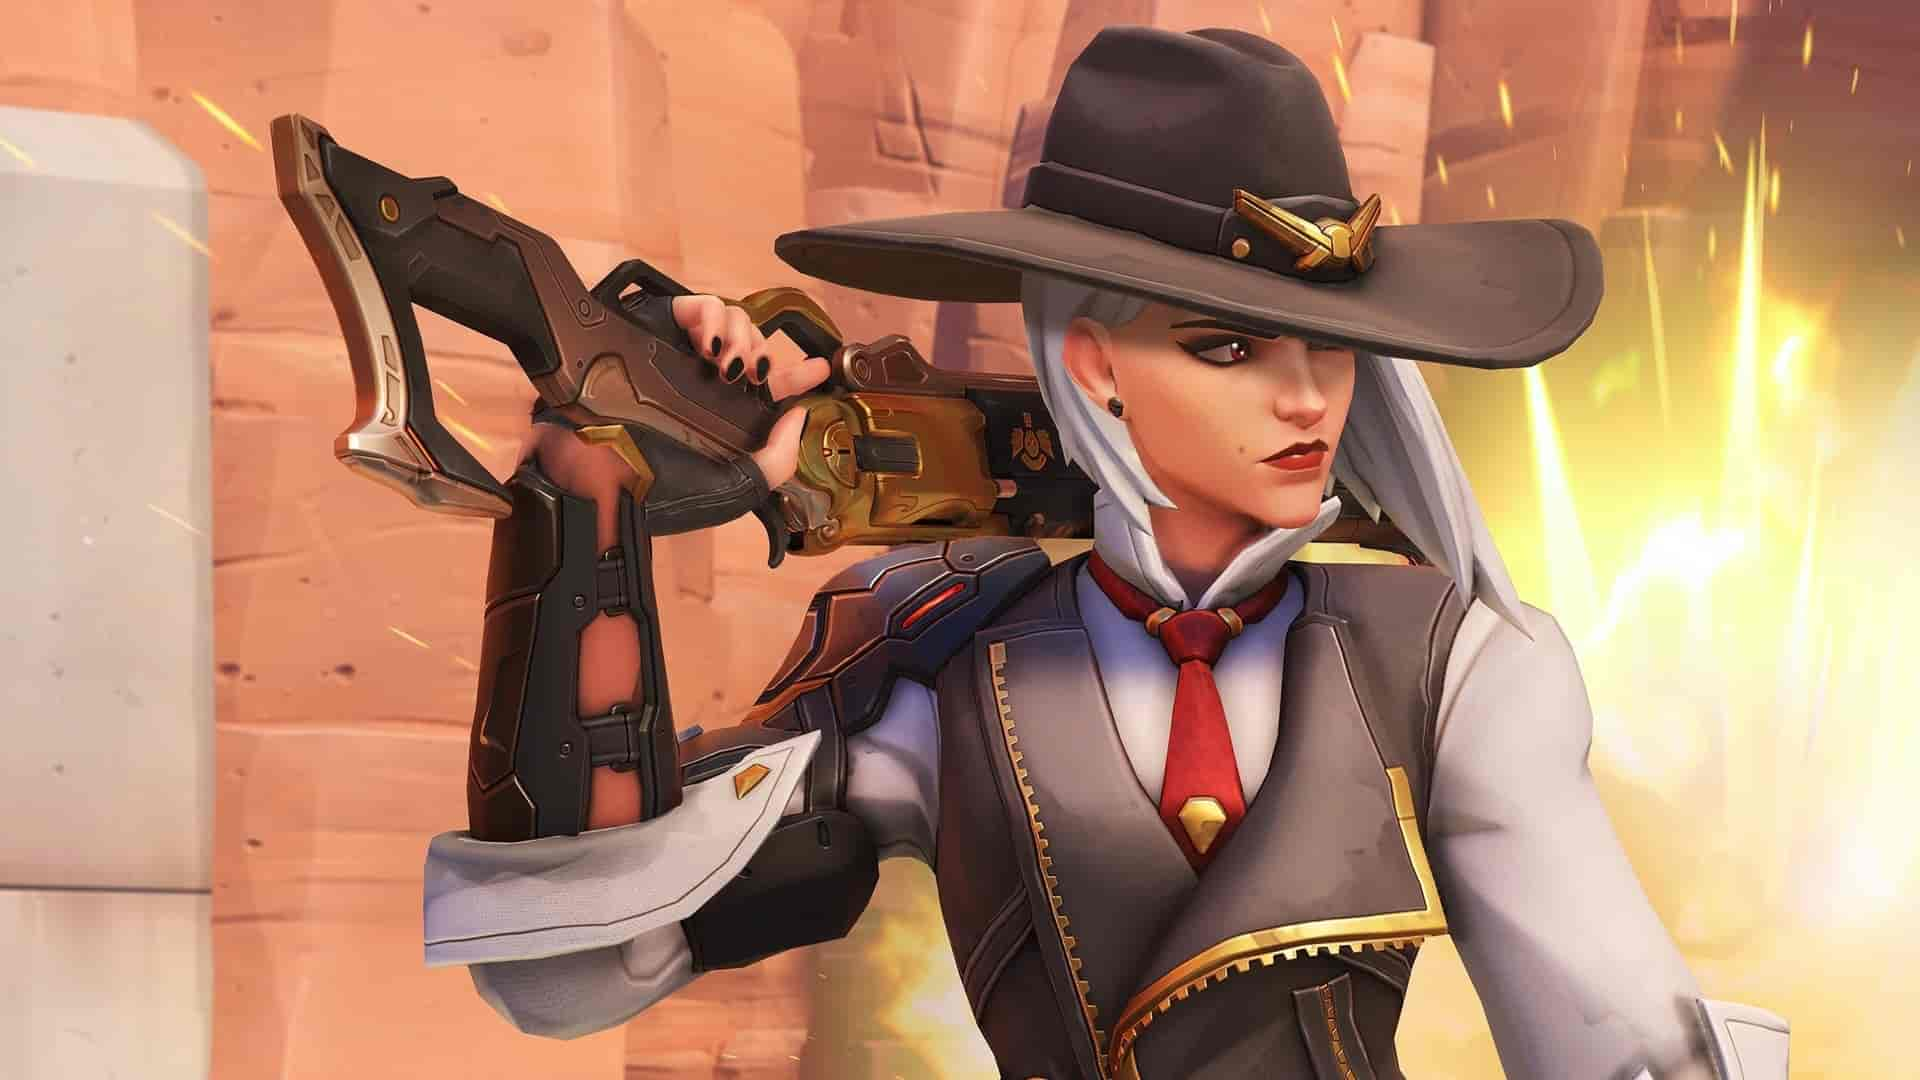 New Overwatch hero Ashe playable on Public Test Region now